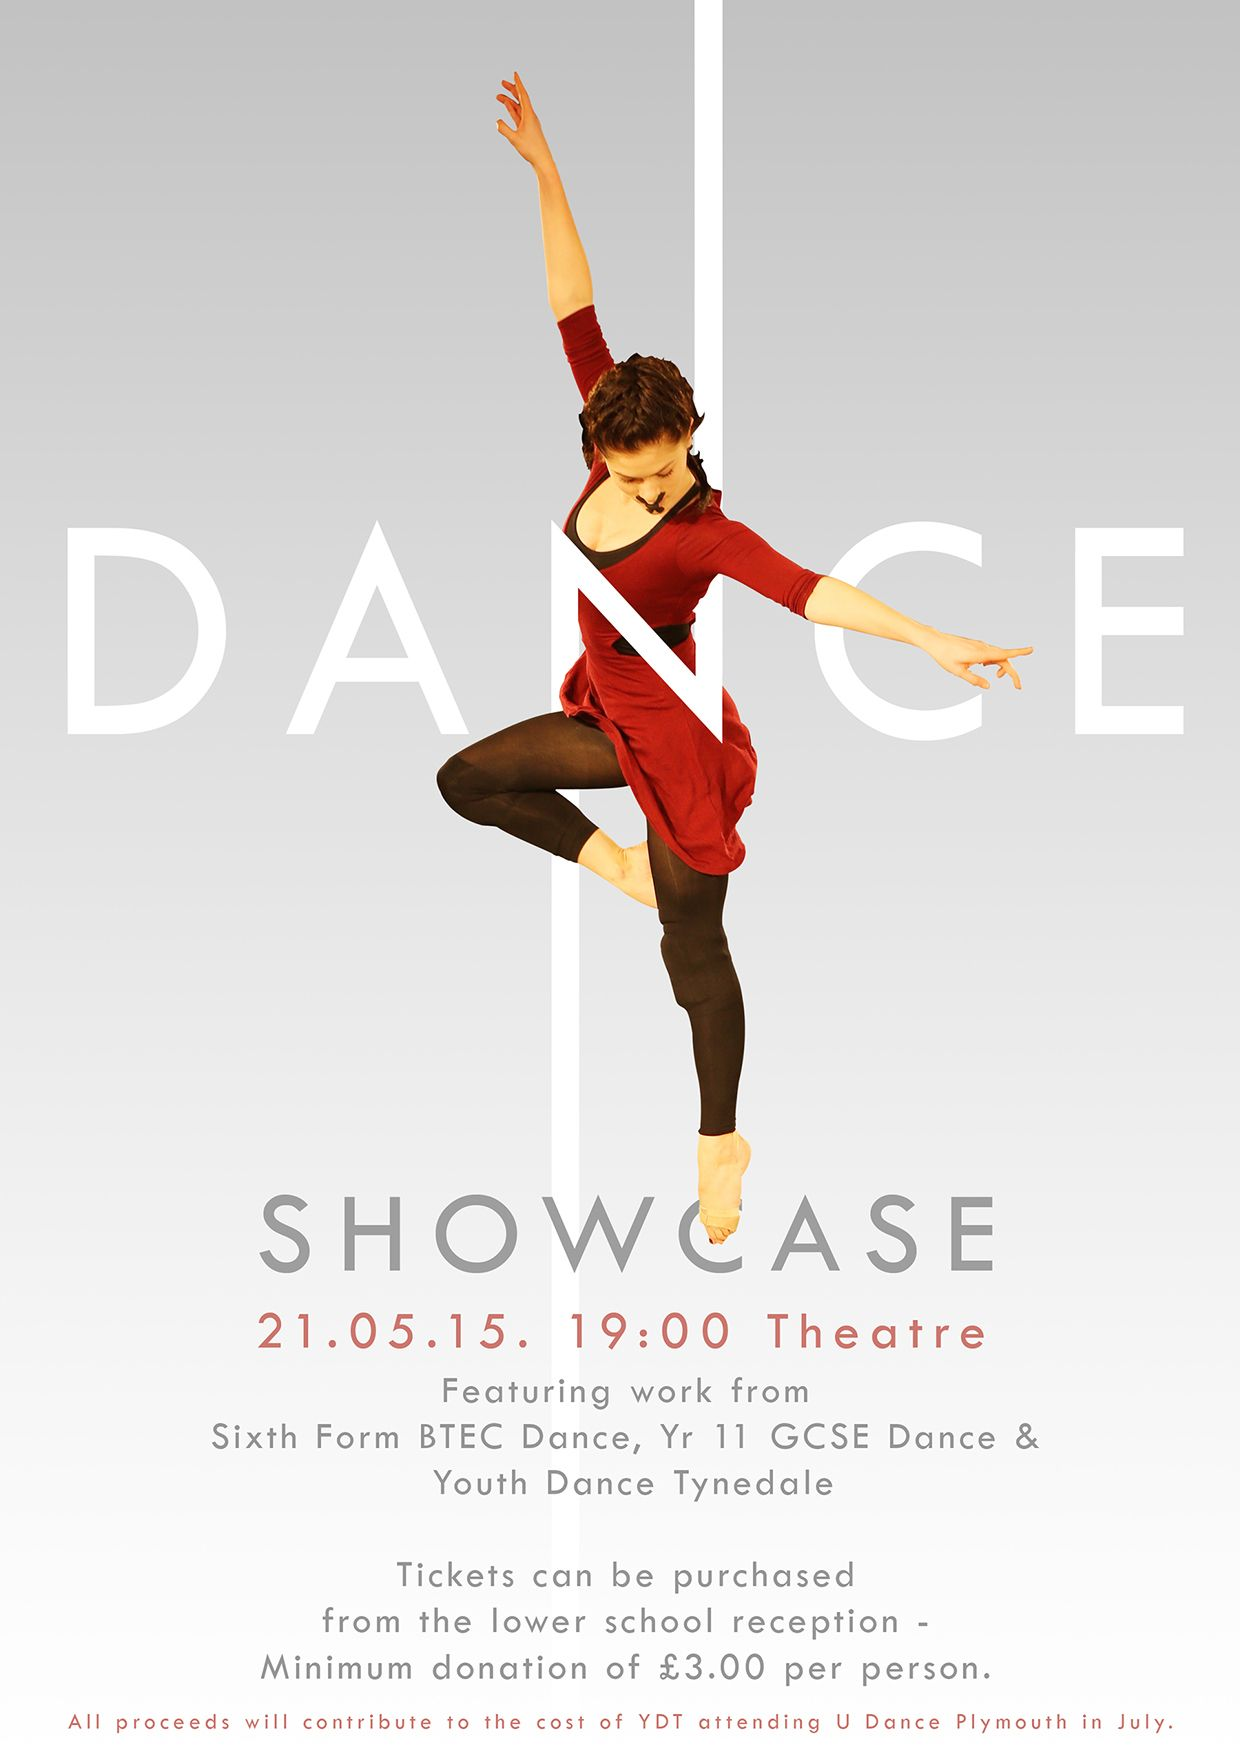 Dance Showcase Poster On Behance Dance Poster Design